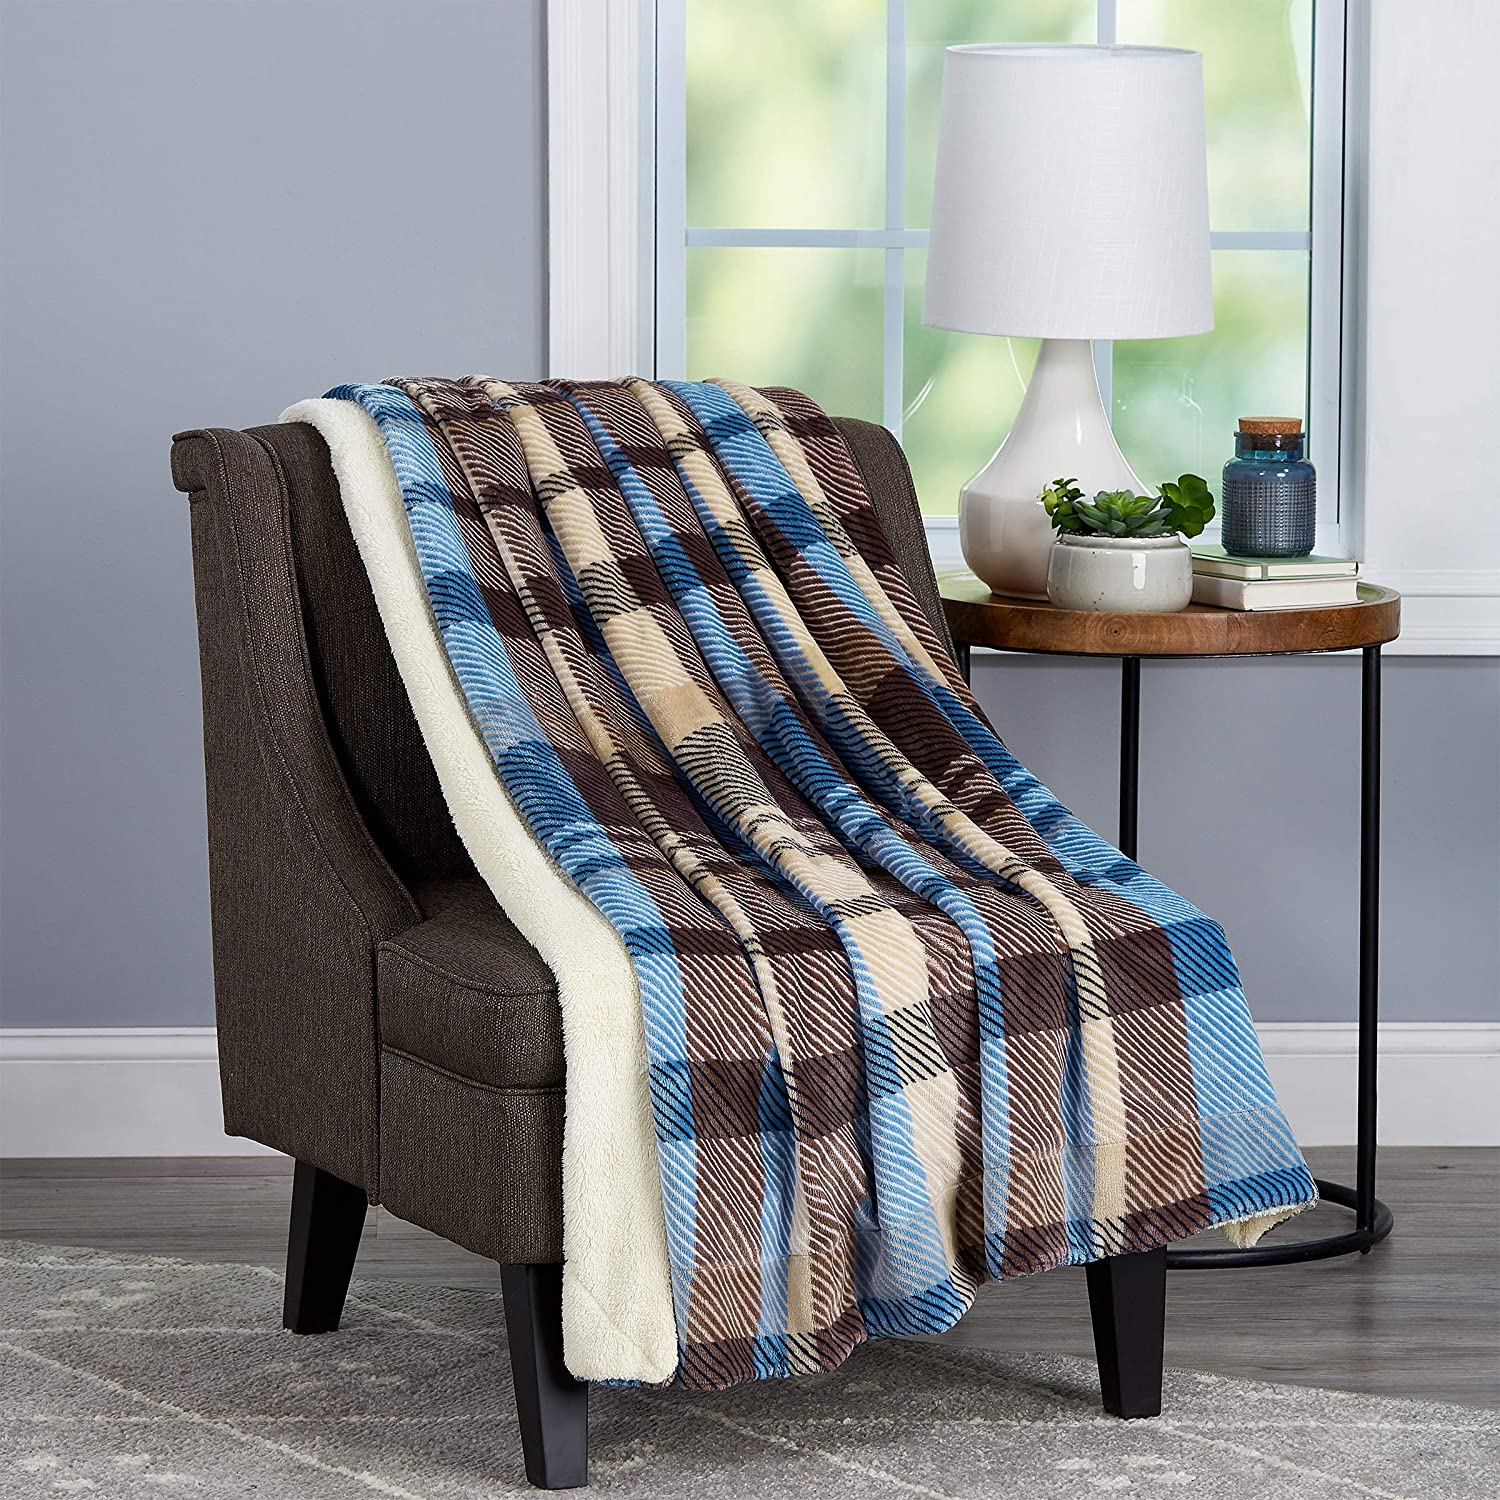 Bedford Home Blanket Oversized Plush Woven Polyester Sherpa Fleece Plaid Throw – Breathable and Machine Washable, Horizon